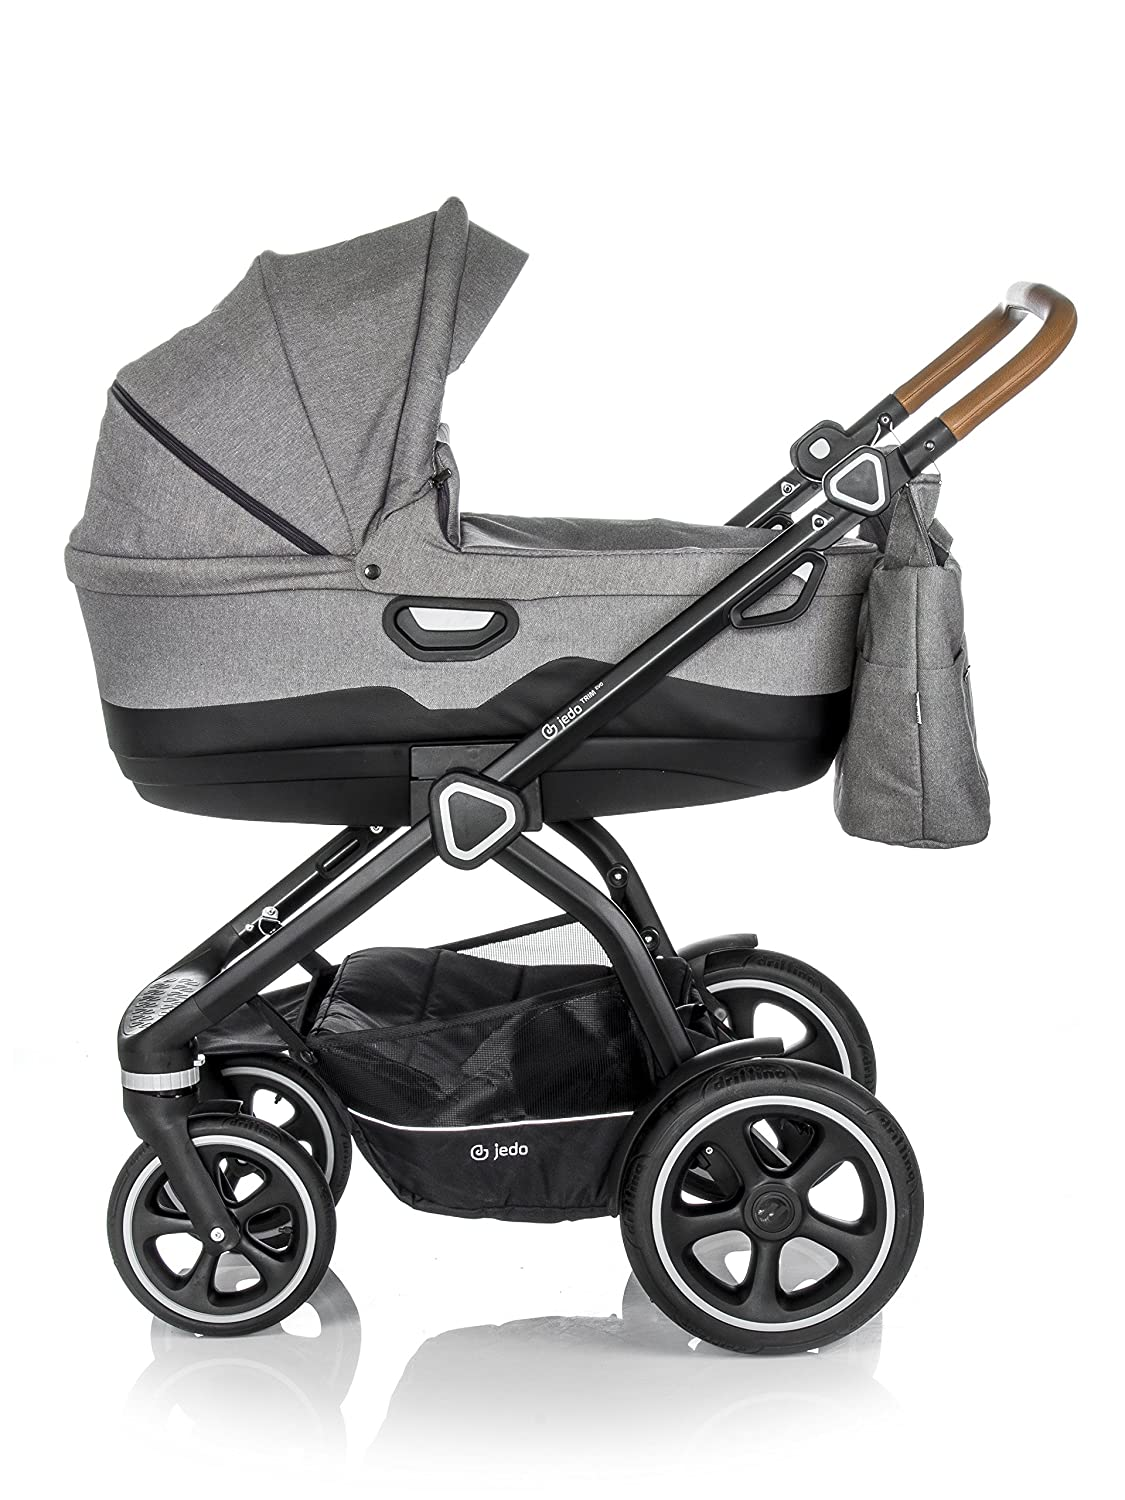 Baby stroller Jedo: photo and review of models, reviews 73